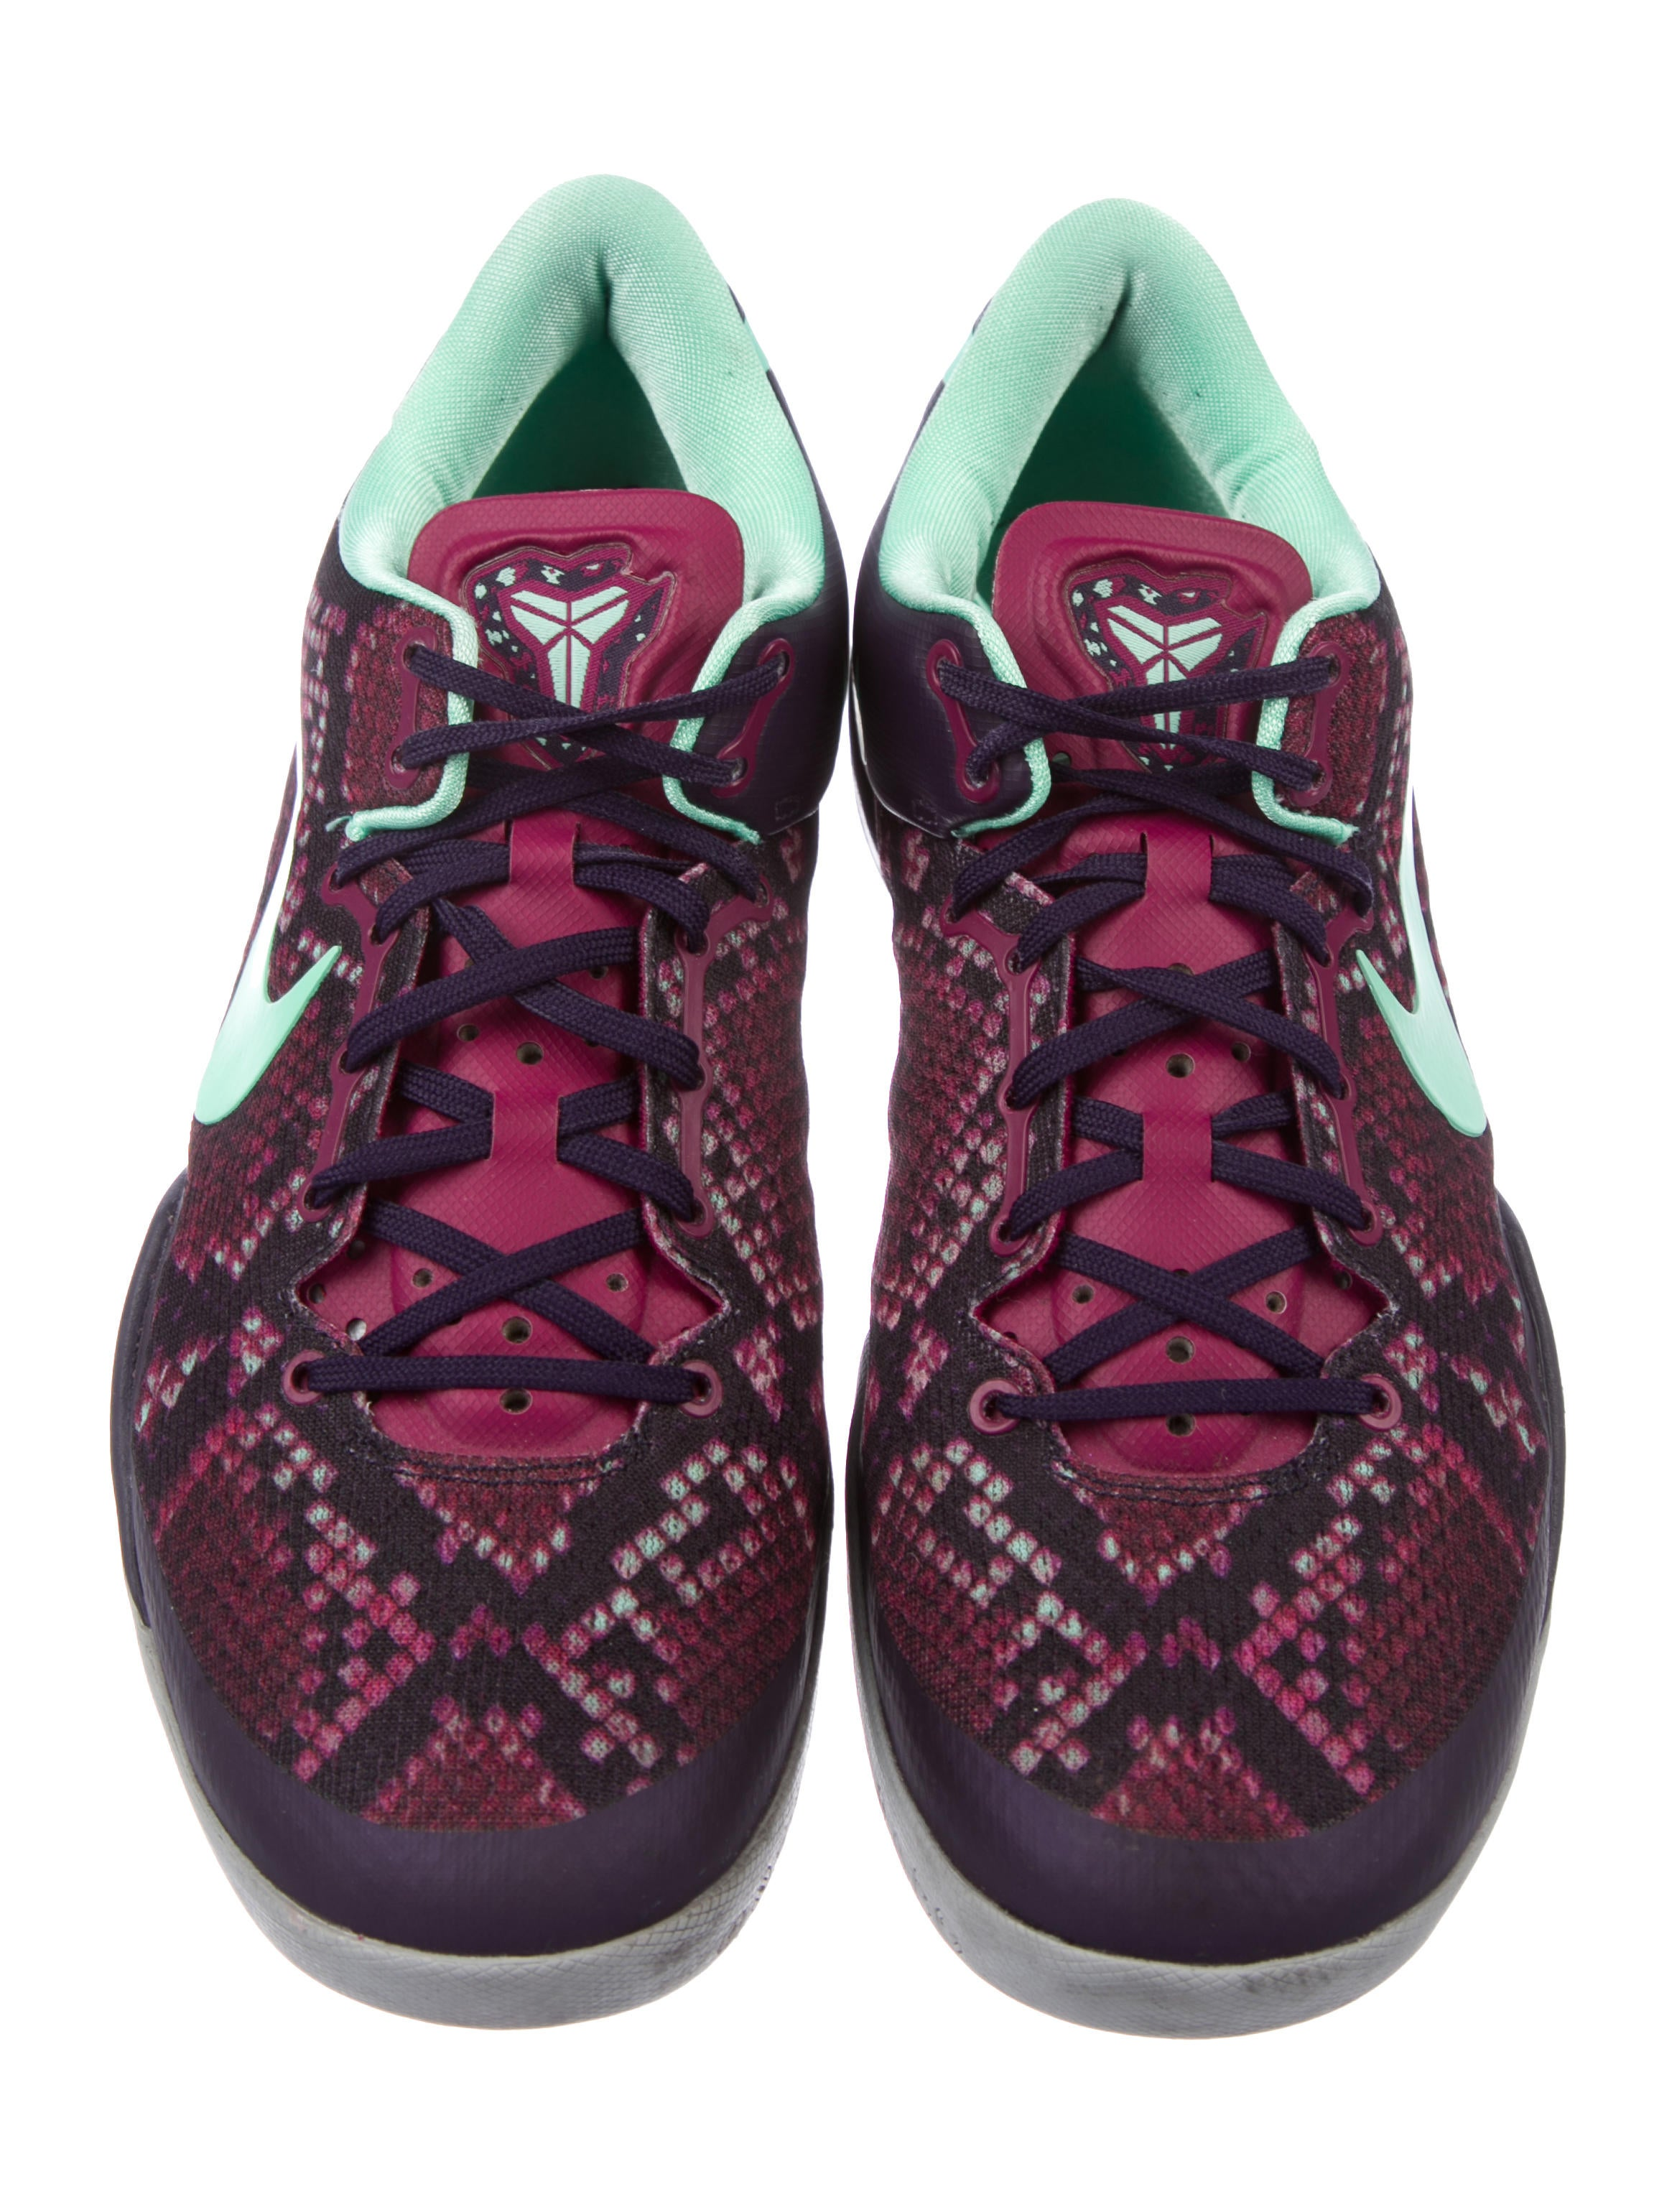 Kobe 8 System Pit Viper Sneakers